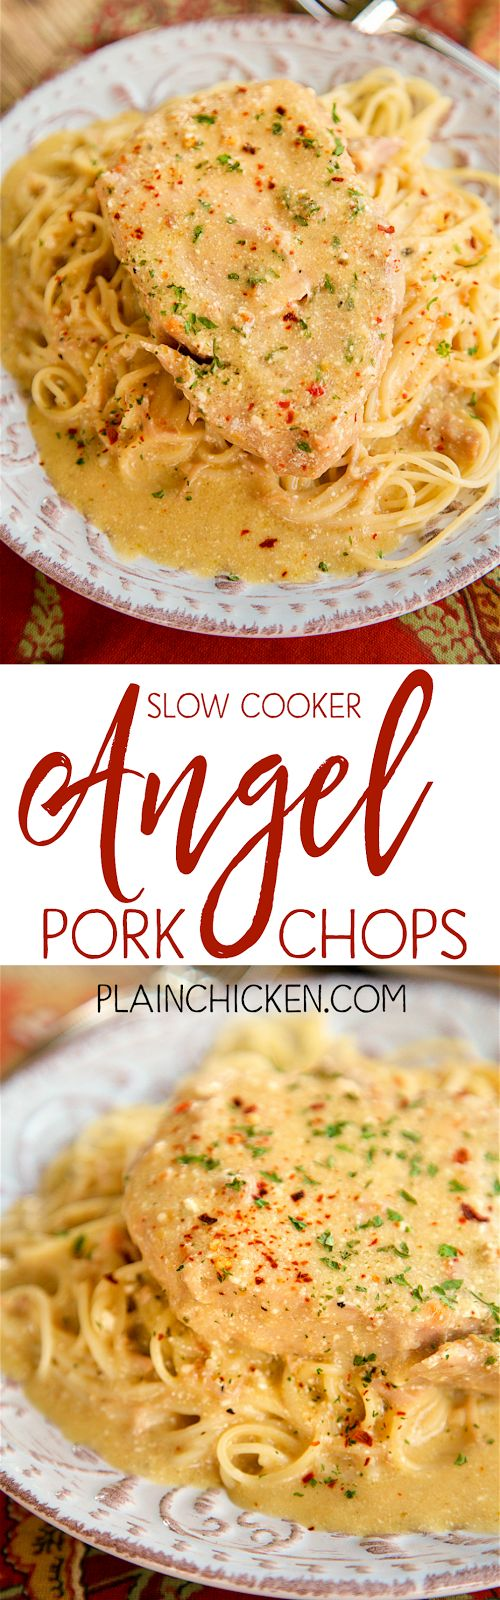 Slow Cooker Angel Pork Chops - THE BEST pork chops EVER! Everyone cleaned their plate!!! SO tender and full of flavor. Pork chops, Italian dressing mix, cream cheese, butter, cream of chicken soup and white wine/chicken broth. Serve over angel hair pasta. Make sure to spoon the sauce out of the slow cooker - it is SO good!!!